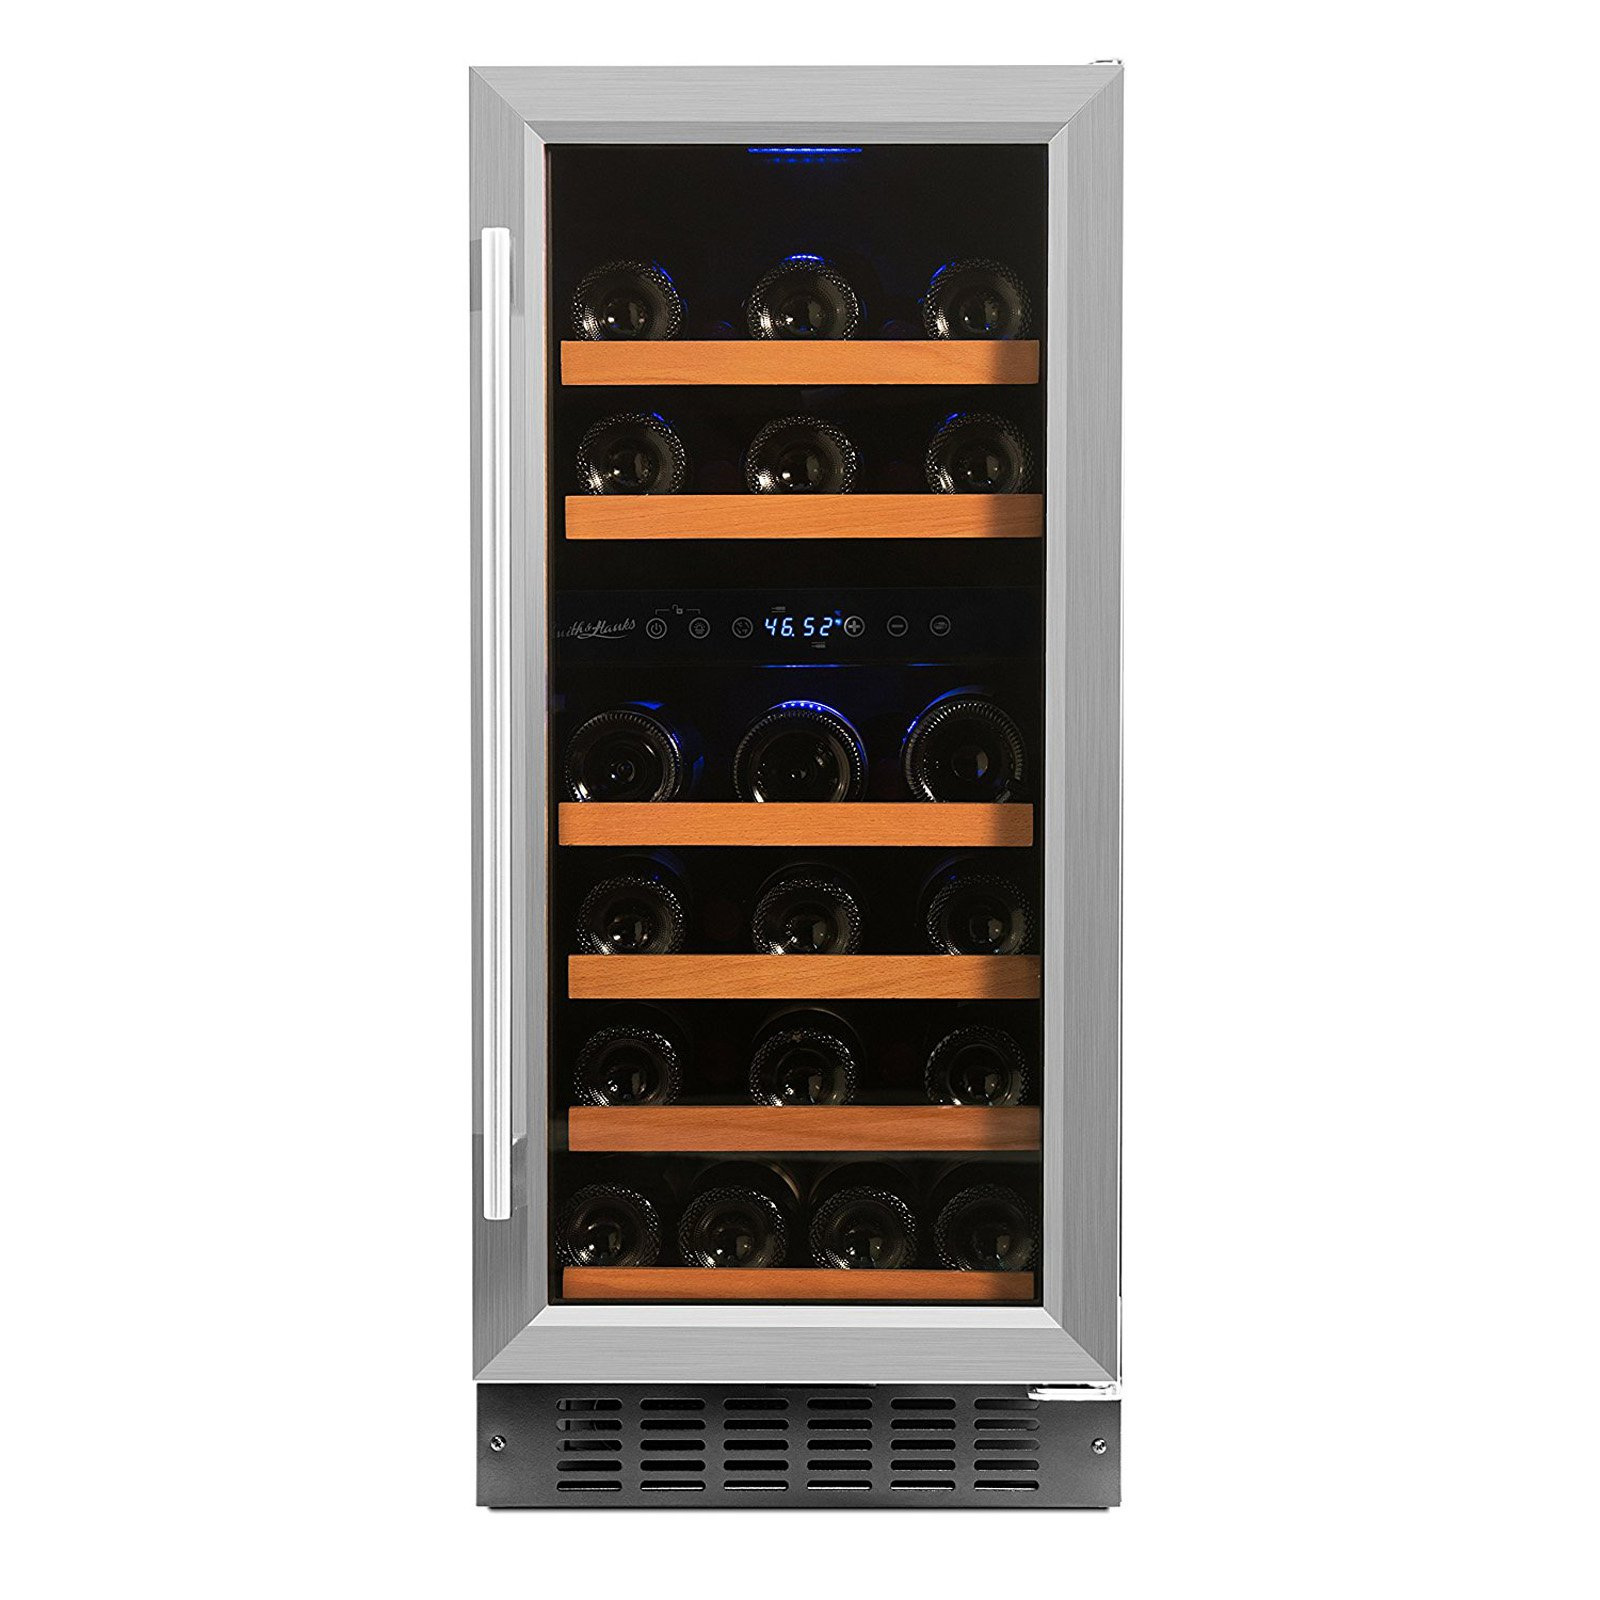 Smith & Hanks 32-Bottle Dual Zone Built-In or Free Standing Wine Refrigerator